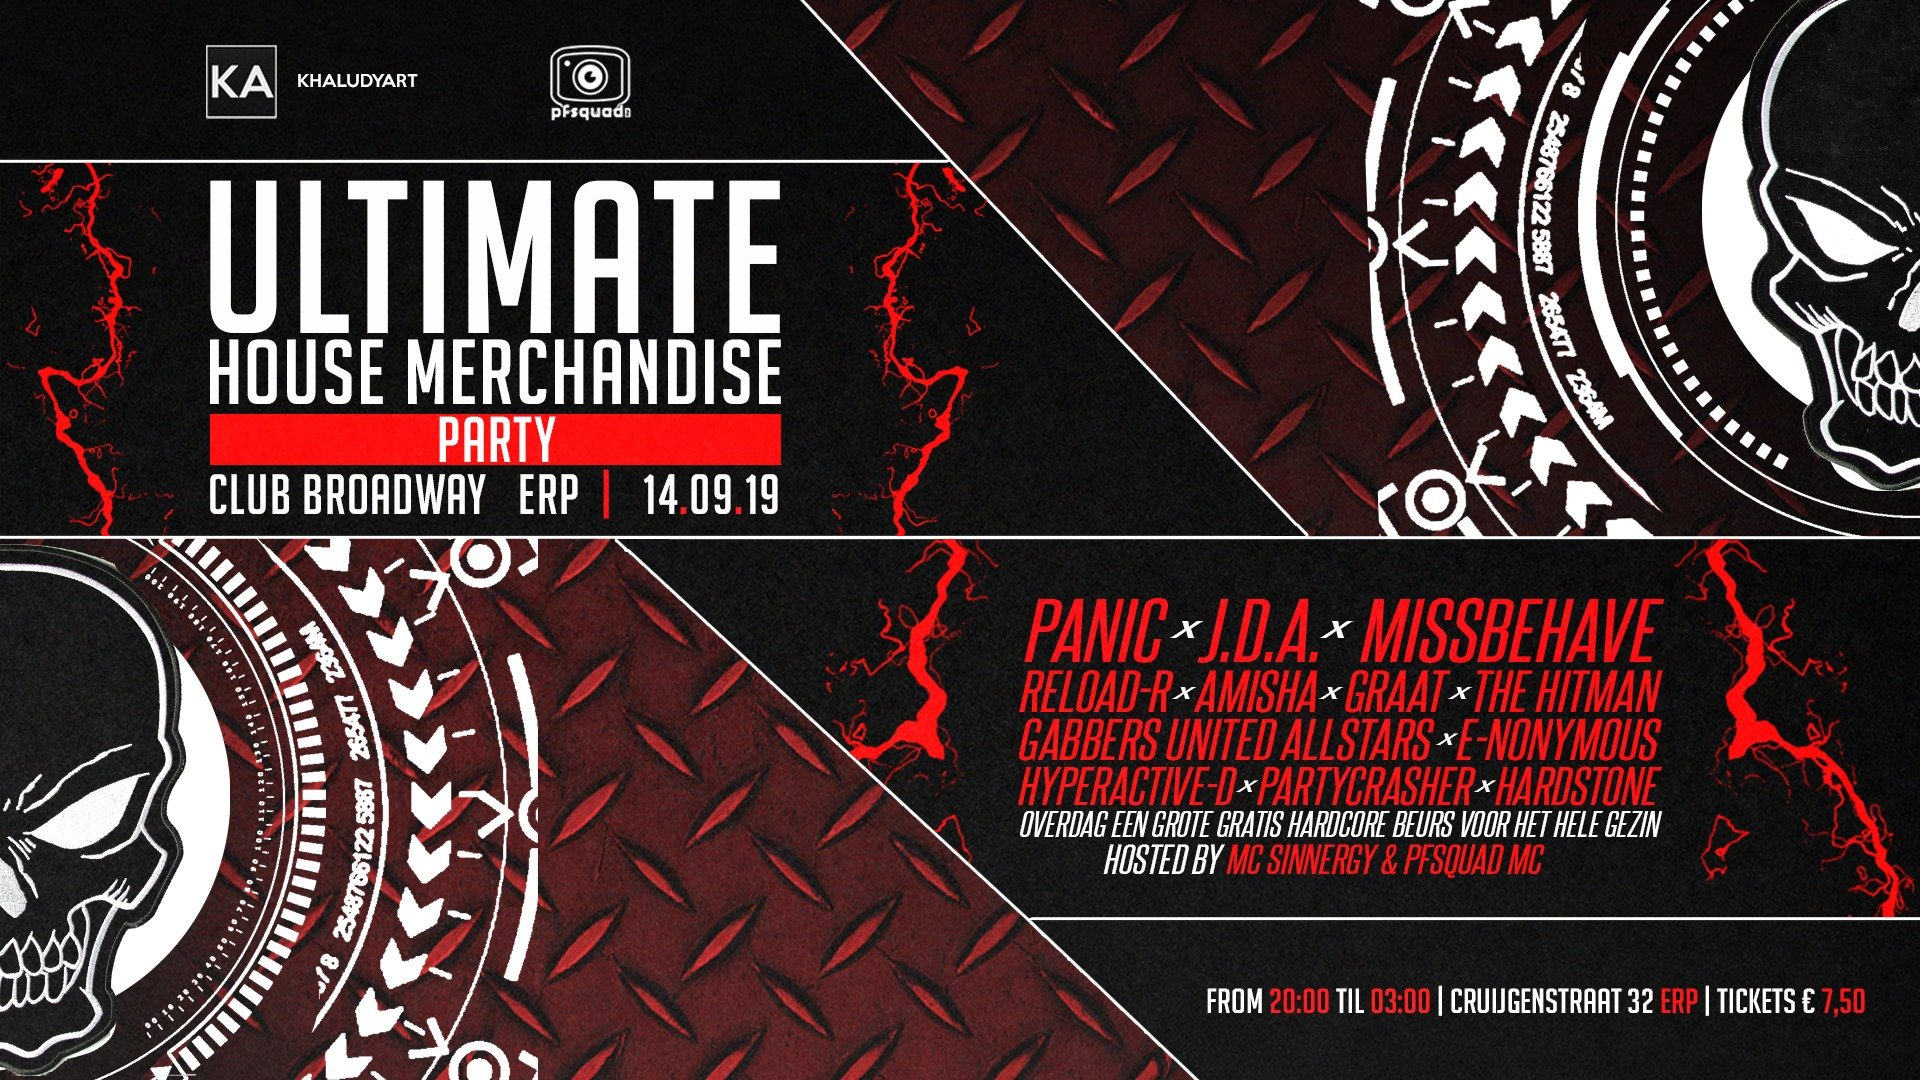 Ultimate House Merchandise - Party